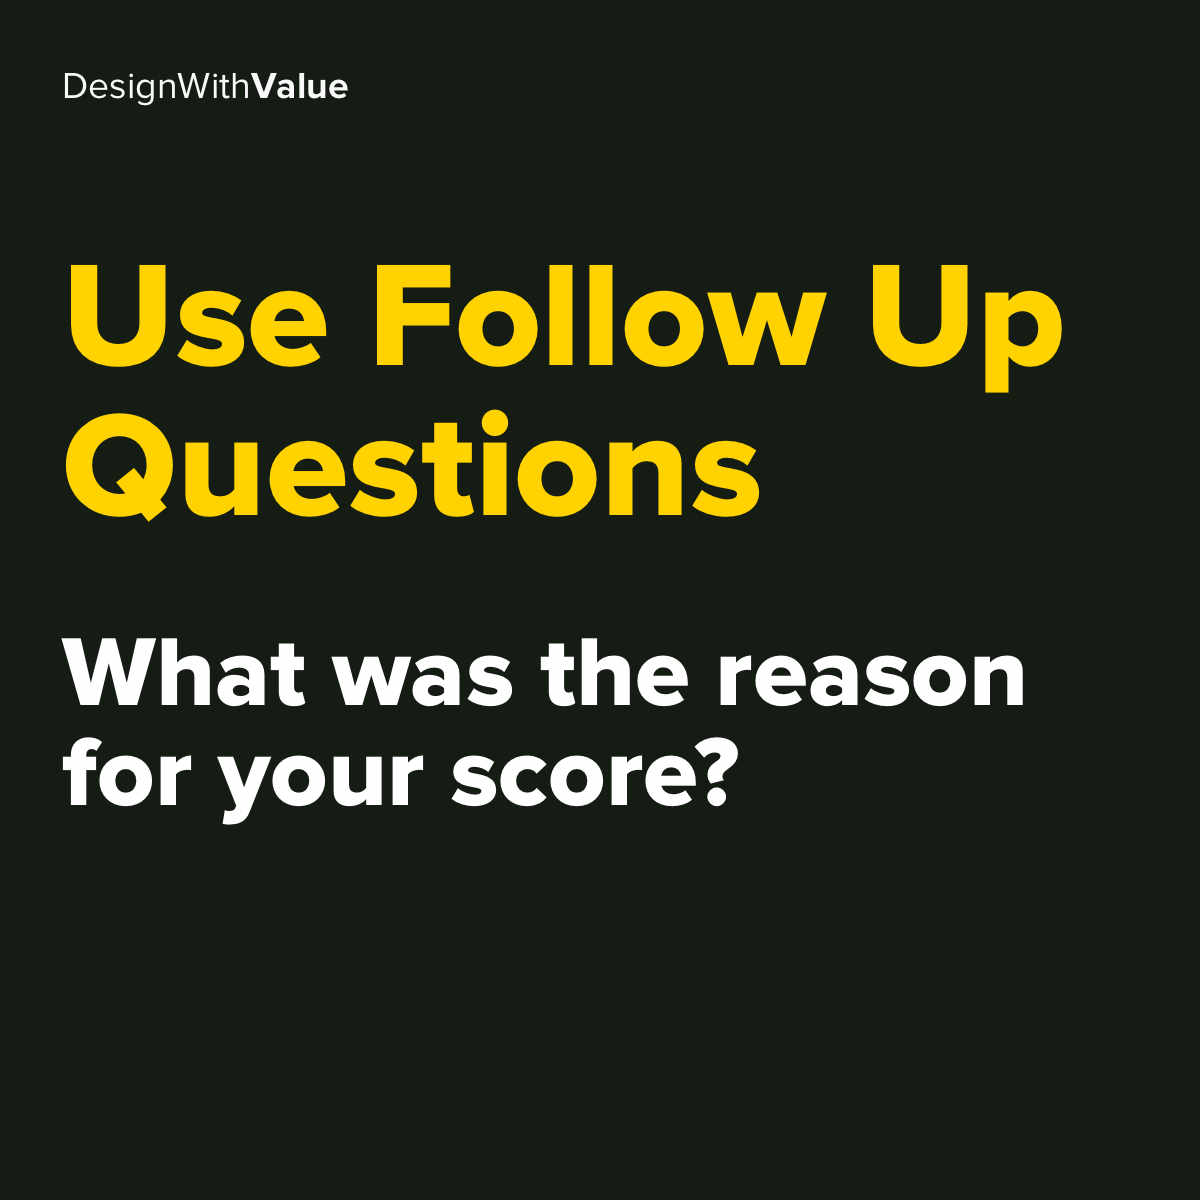 Use follow up questions like what was the reason for your score?